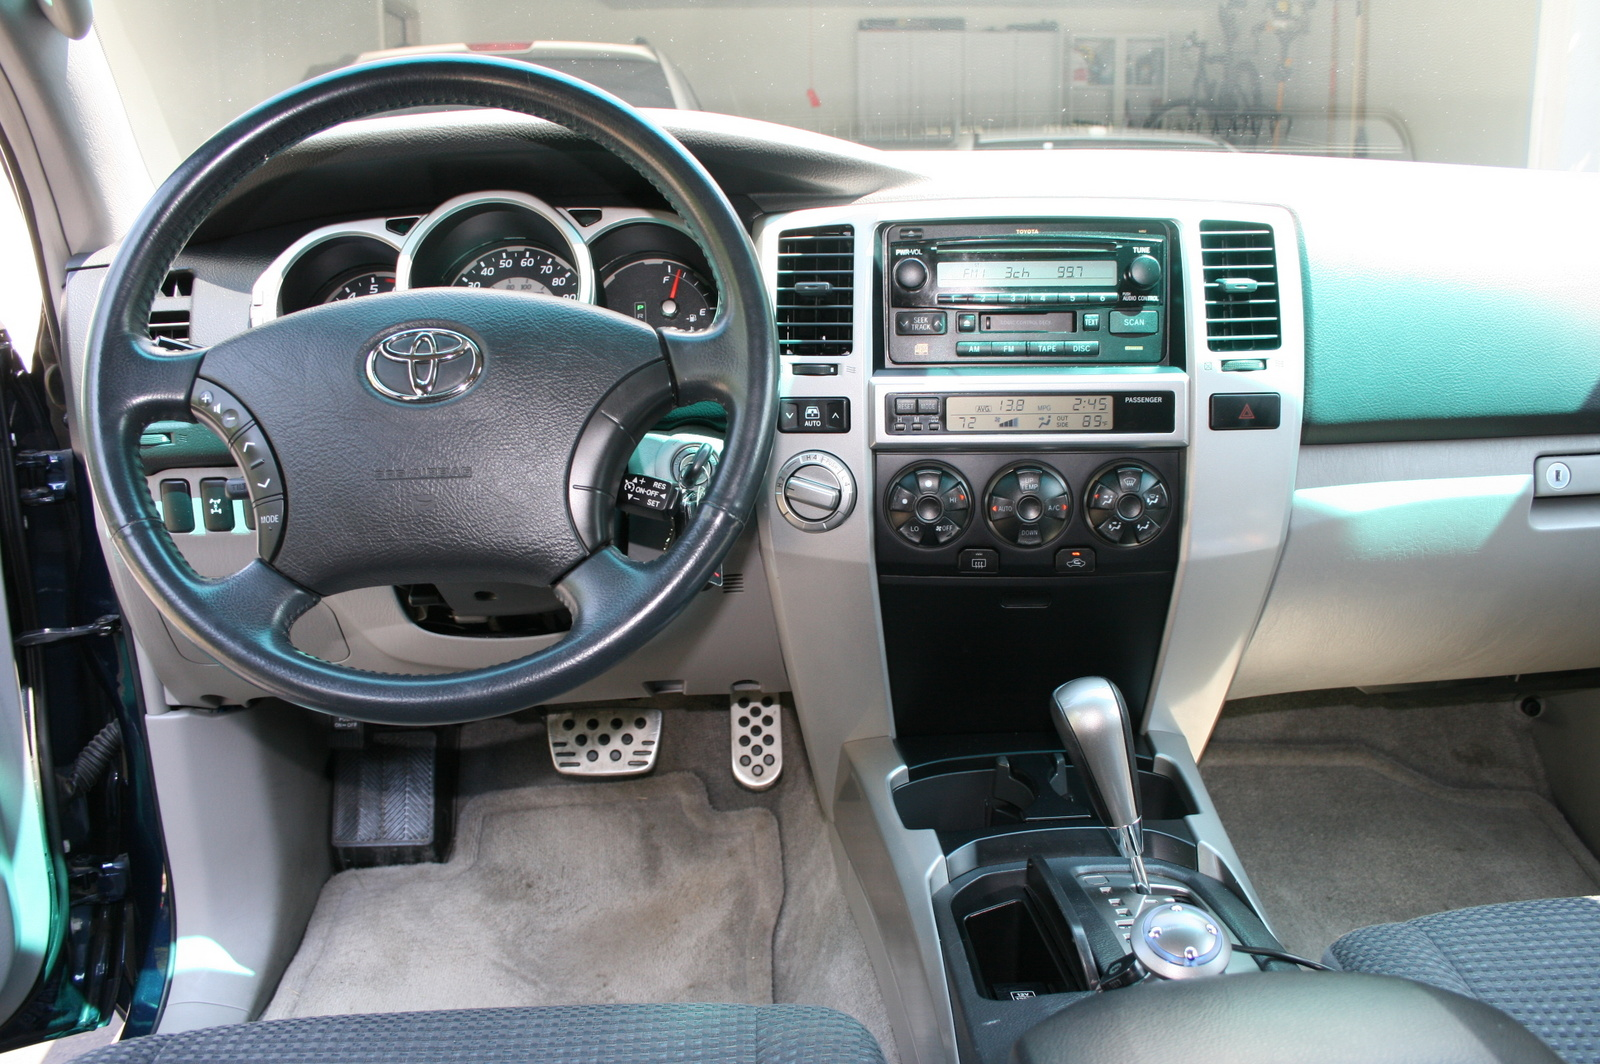 A C Afd Fee Fba C D A Ea C Cake Hot Wheels Hot Wheels Birthday Party Ideas Cake likewise Monster Trucks Pinterest Coloringpages Downloadables X together with Toyota Runner Sport Edition Wd Pic besides Toyota furthermore Toyota Corolla Ce Sacramento Ca. on toyota highlander coloring pages